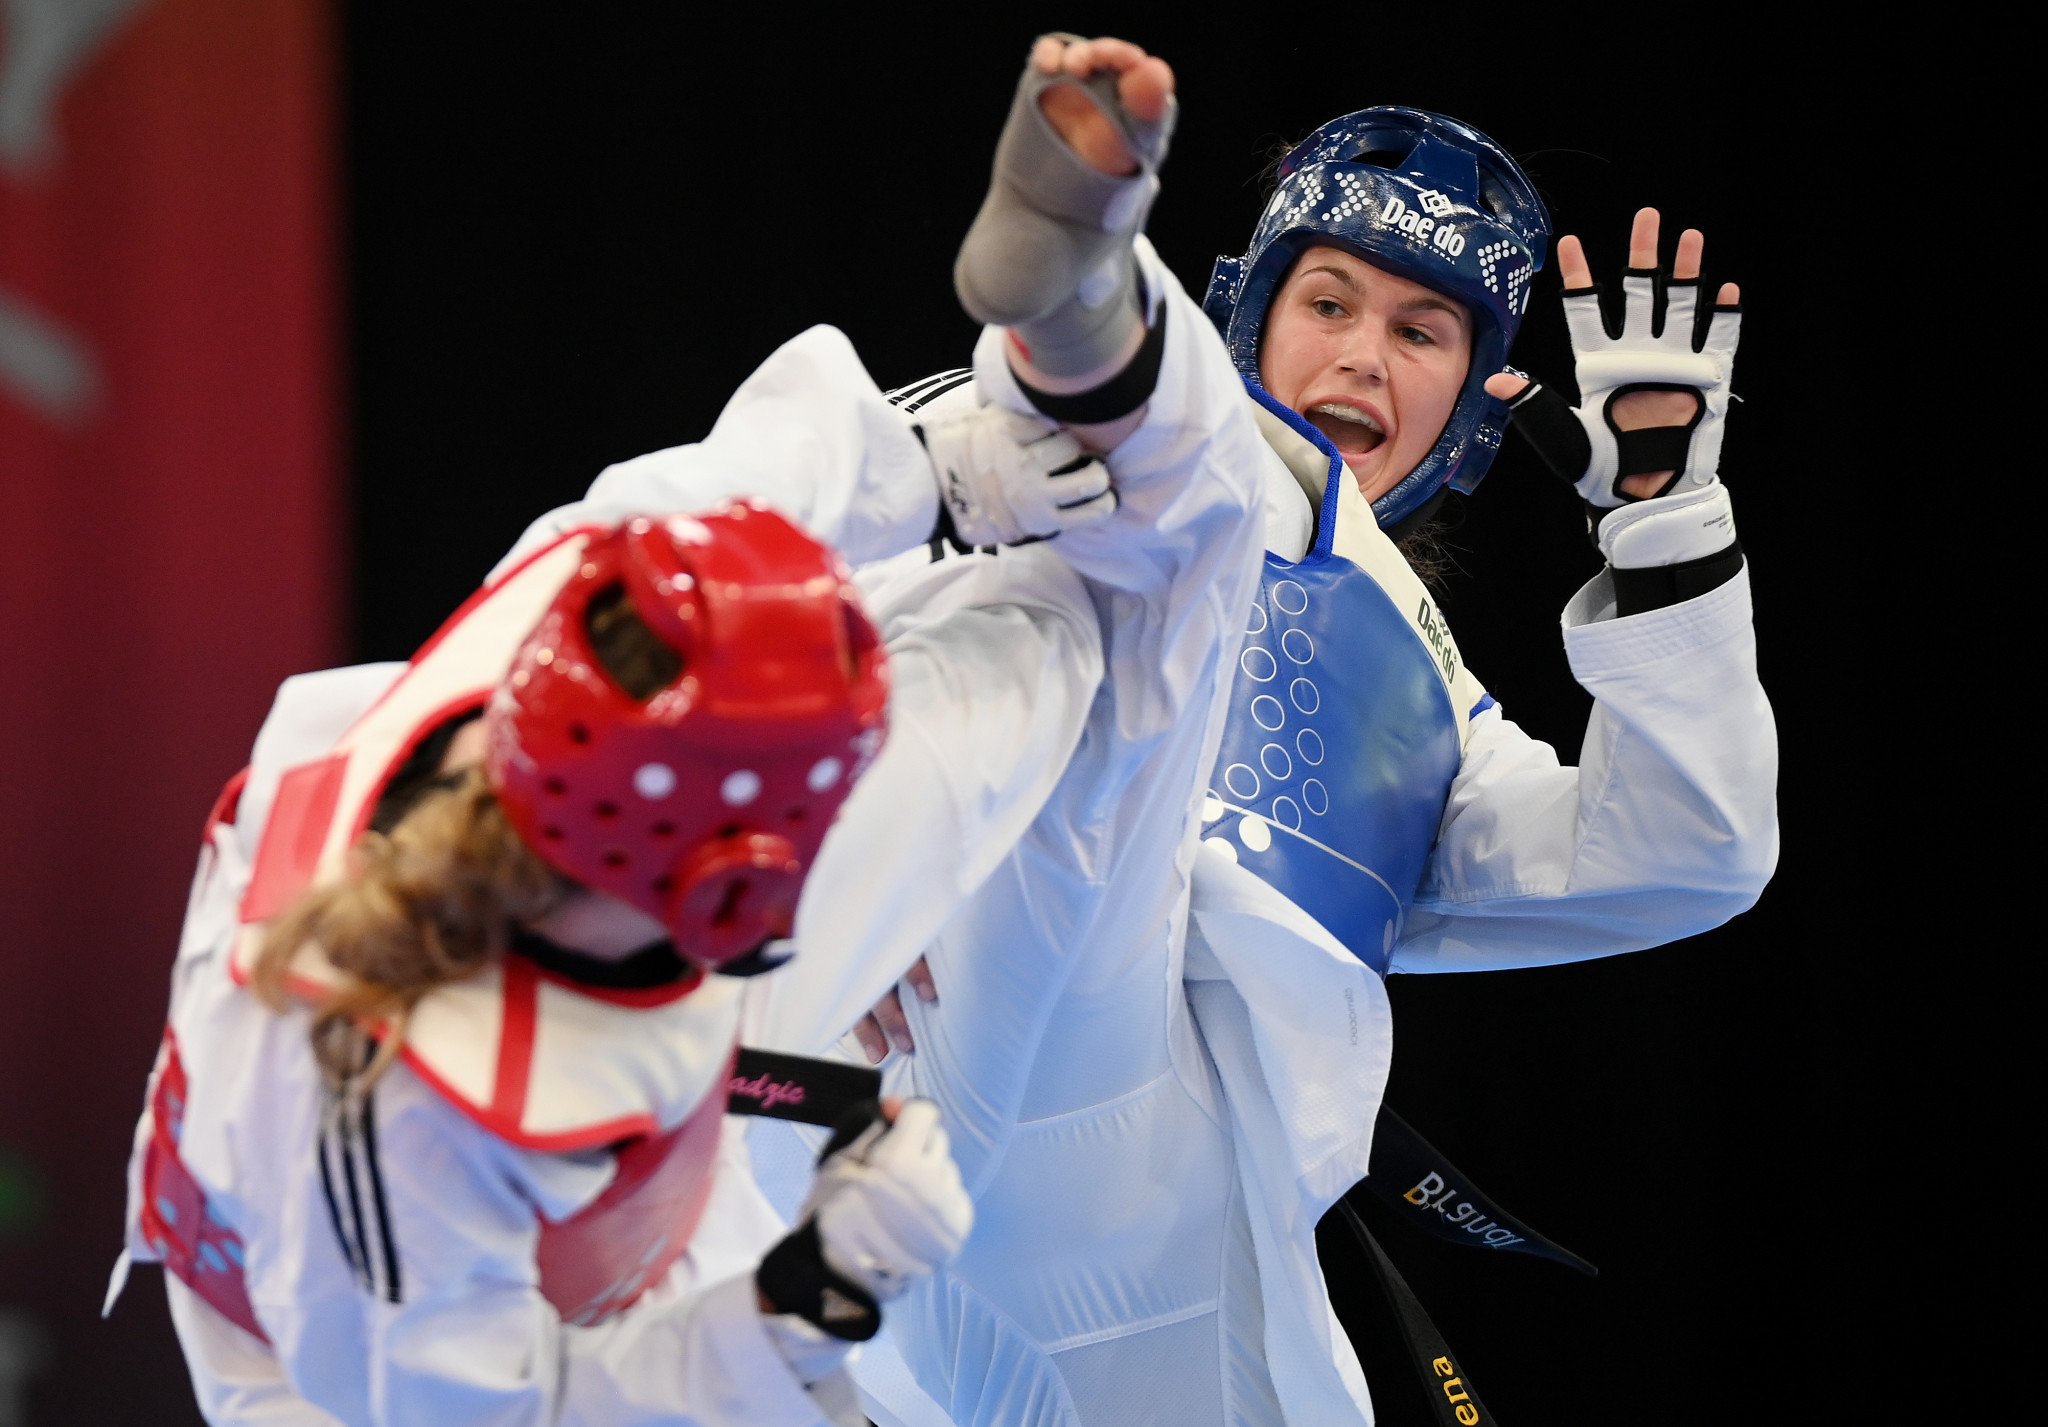 Lorena Brandl of Germany, in blue, took gold in the women's under-73kg category at the ETU President's Cup ©Getty Images